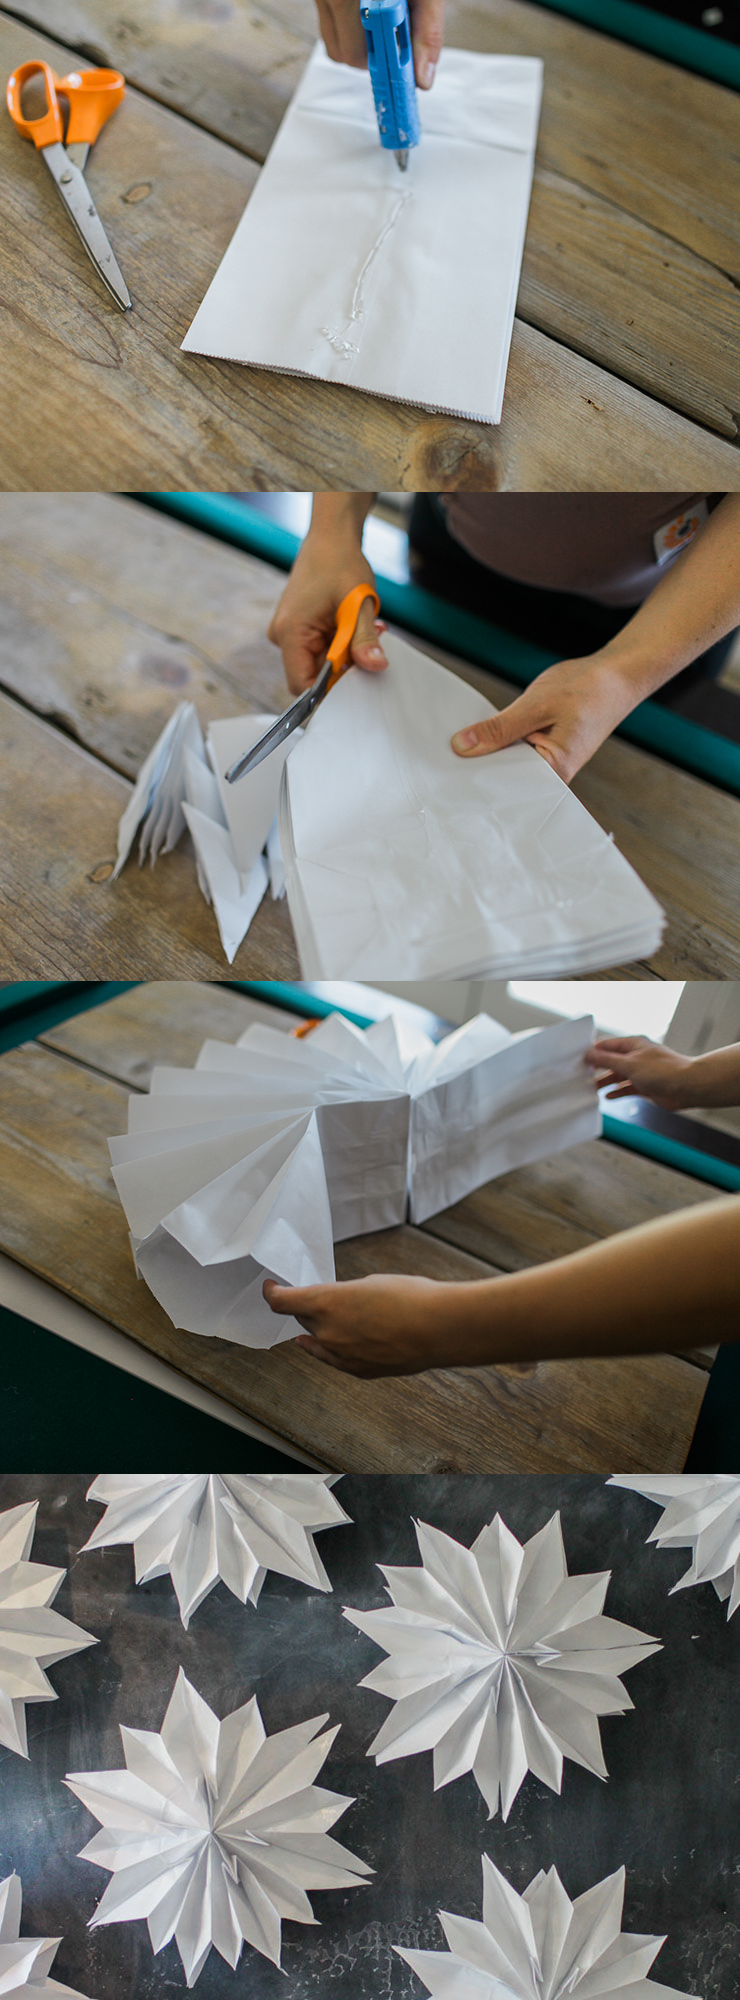 How To Make Paper Christmas Ceiling Decorations : Giant paper bag stars craft party decor